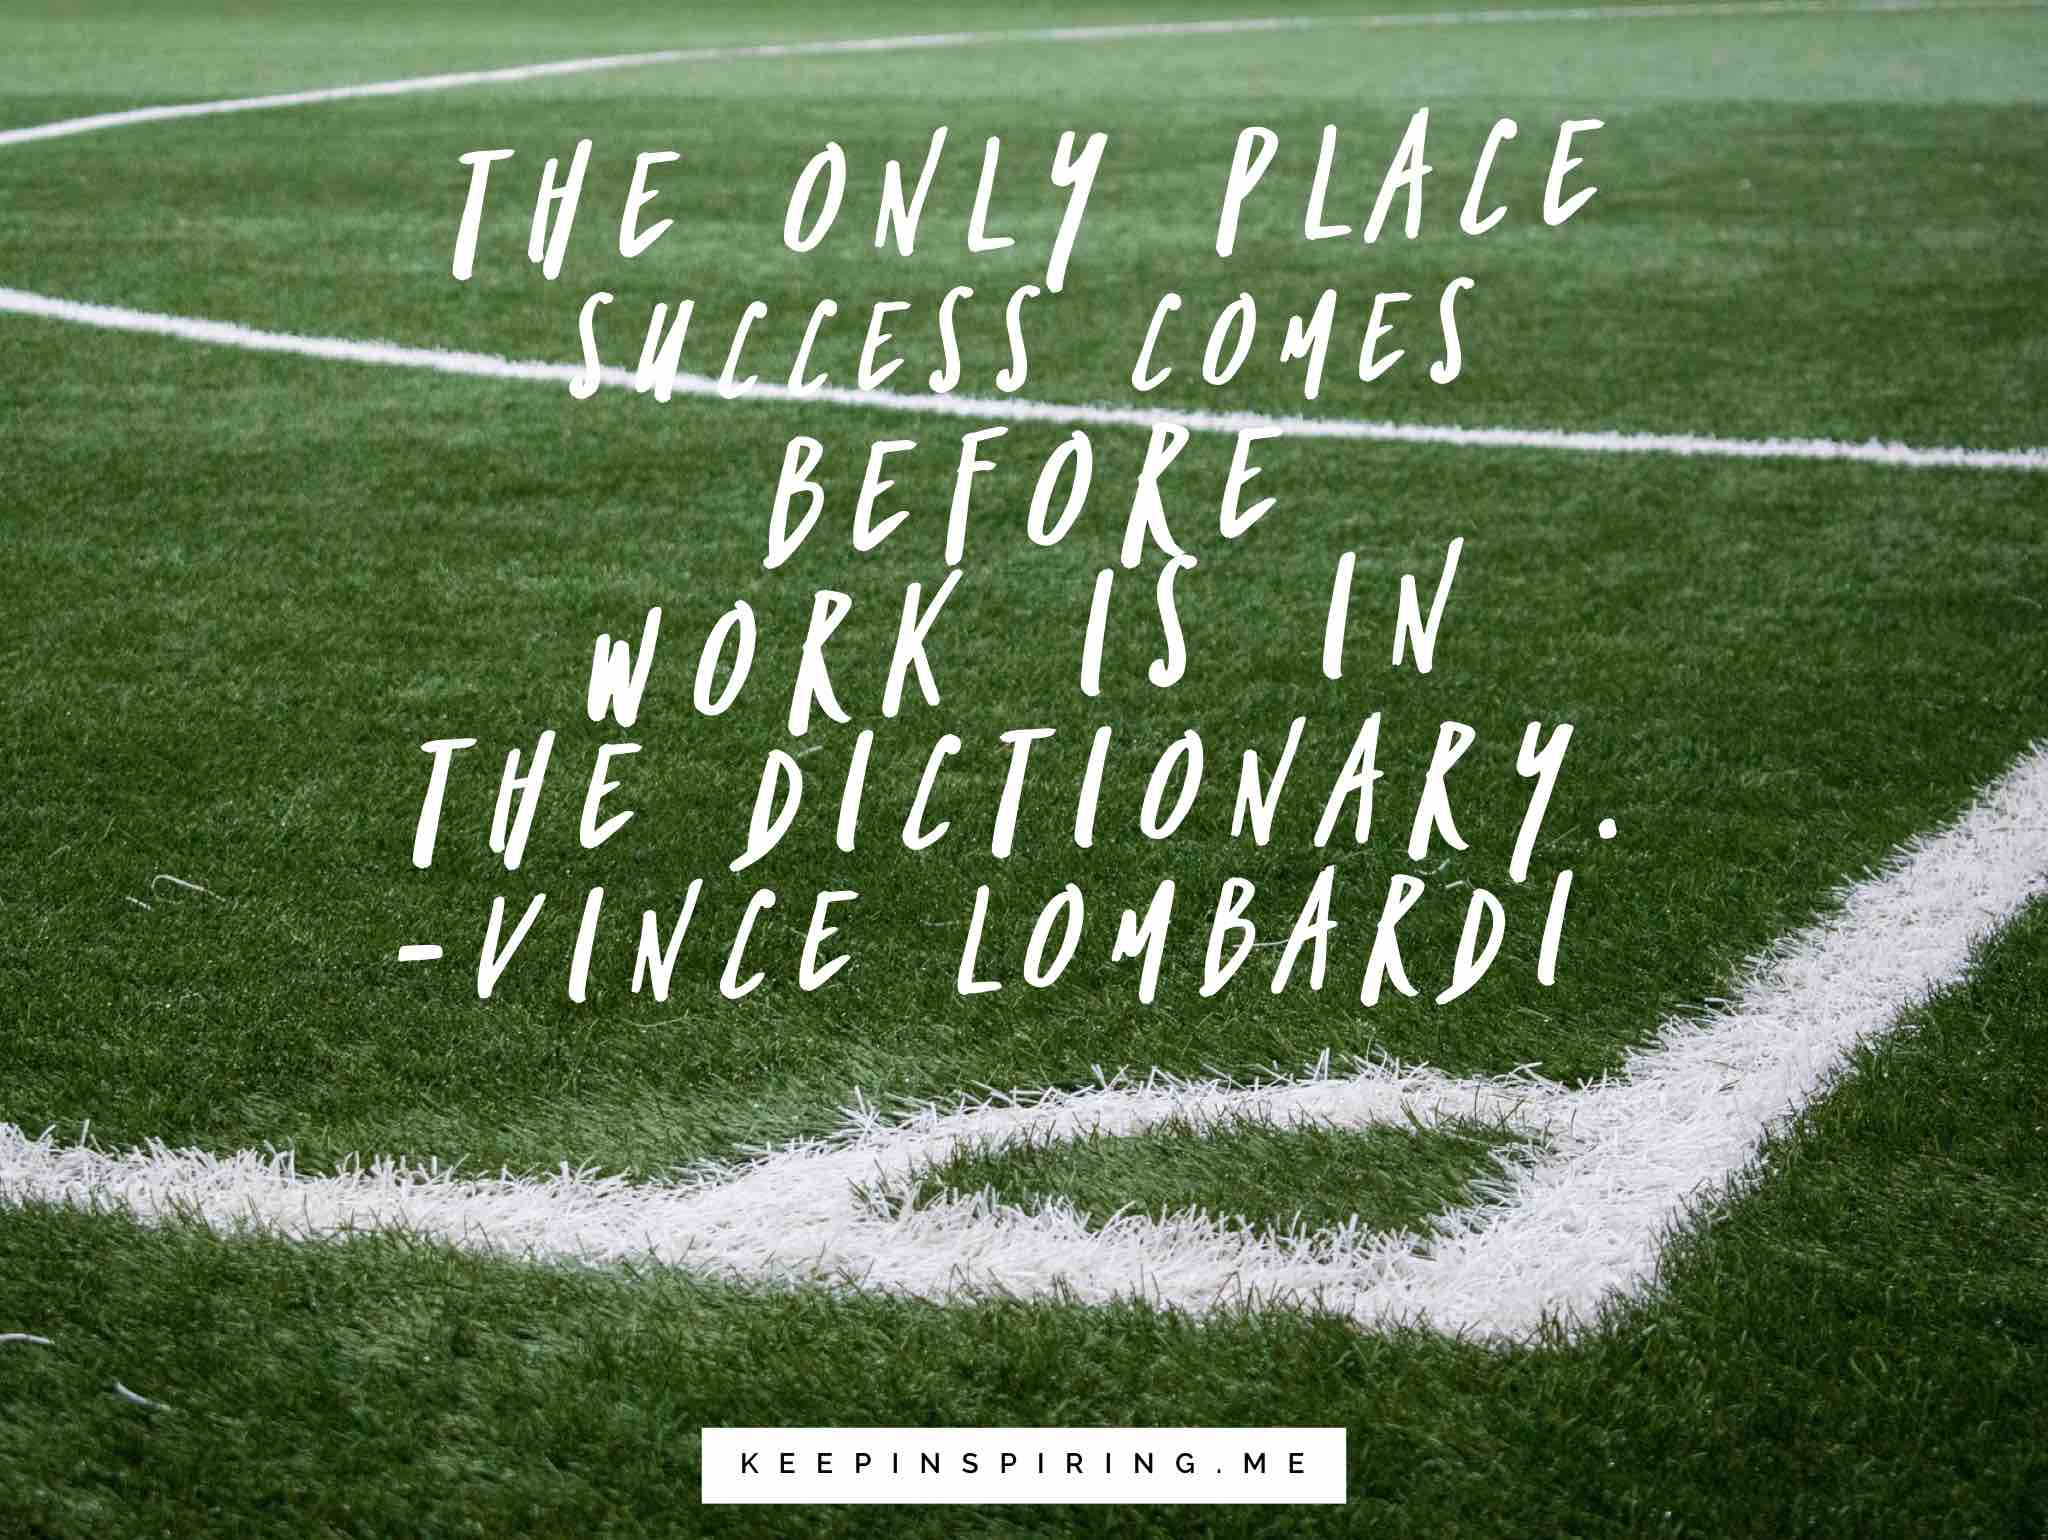 vince-lombardi-quotes-3.jpg